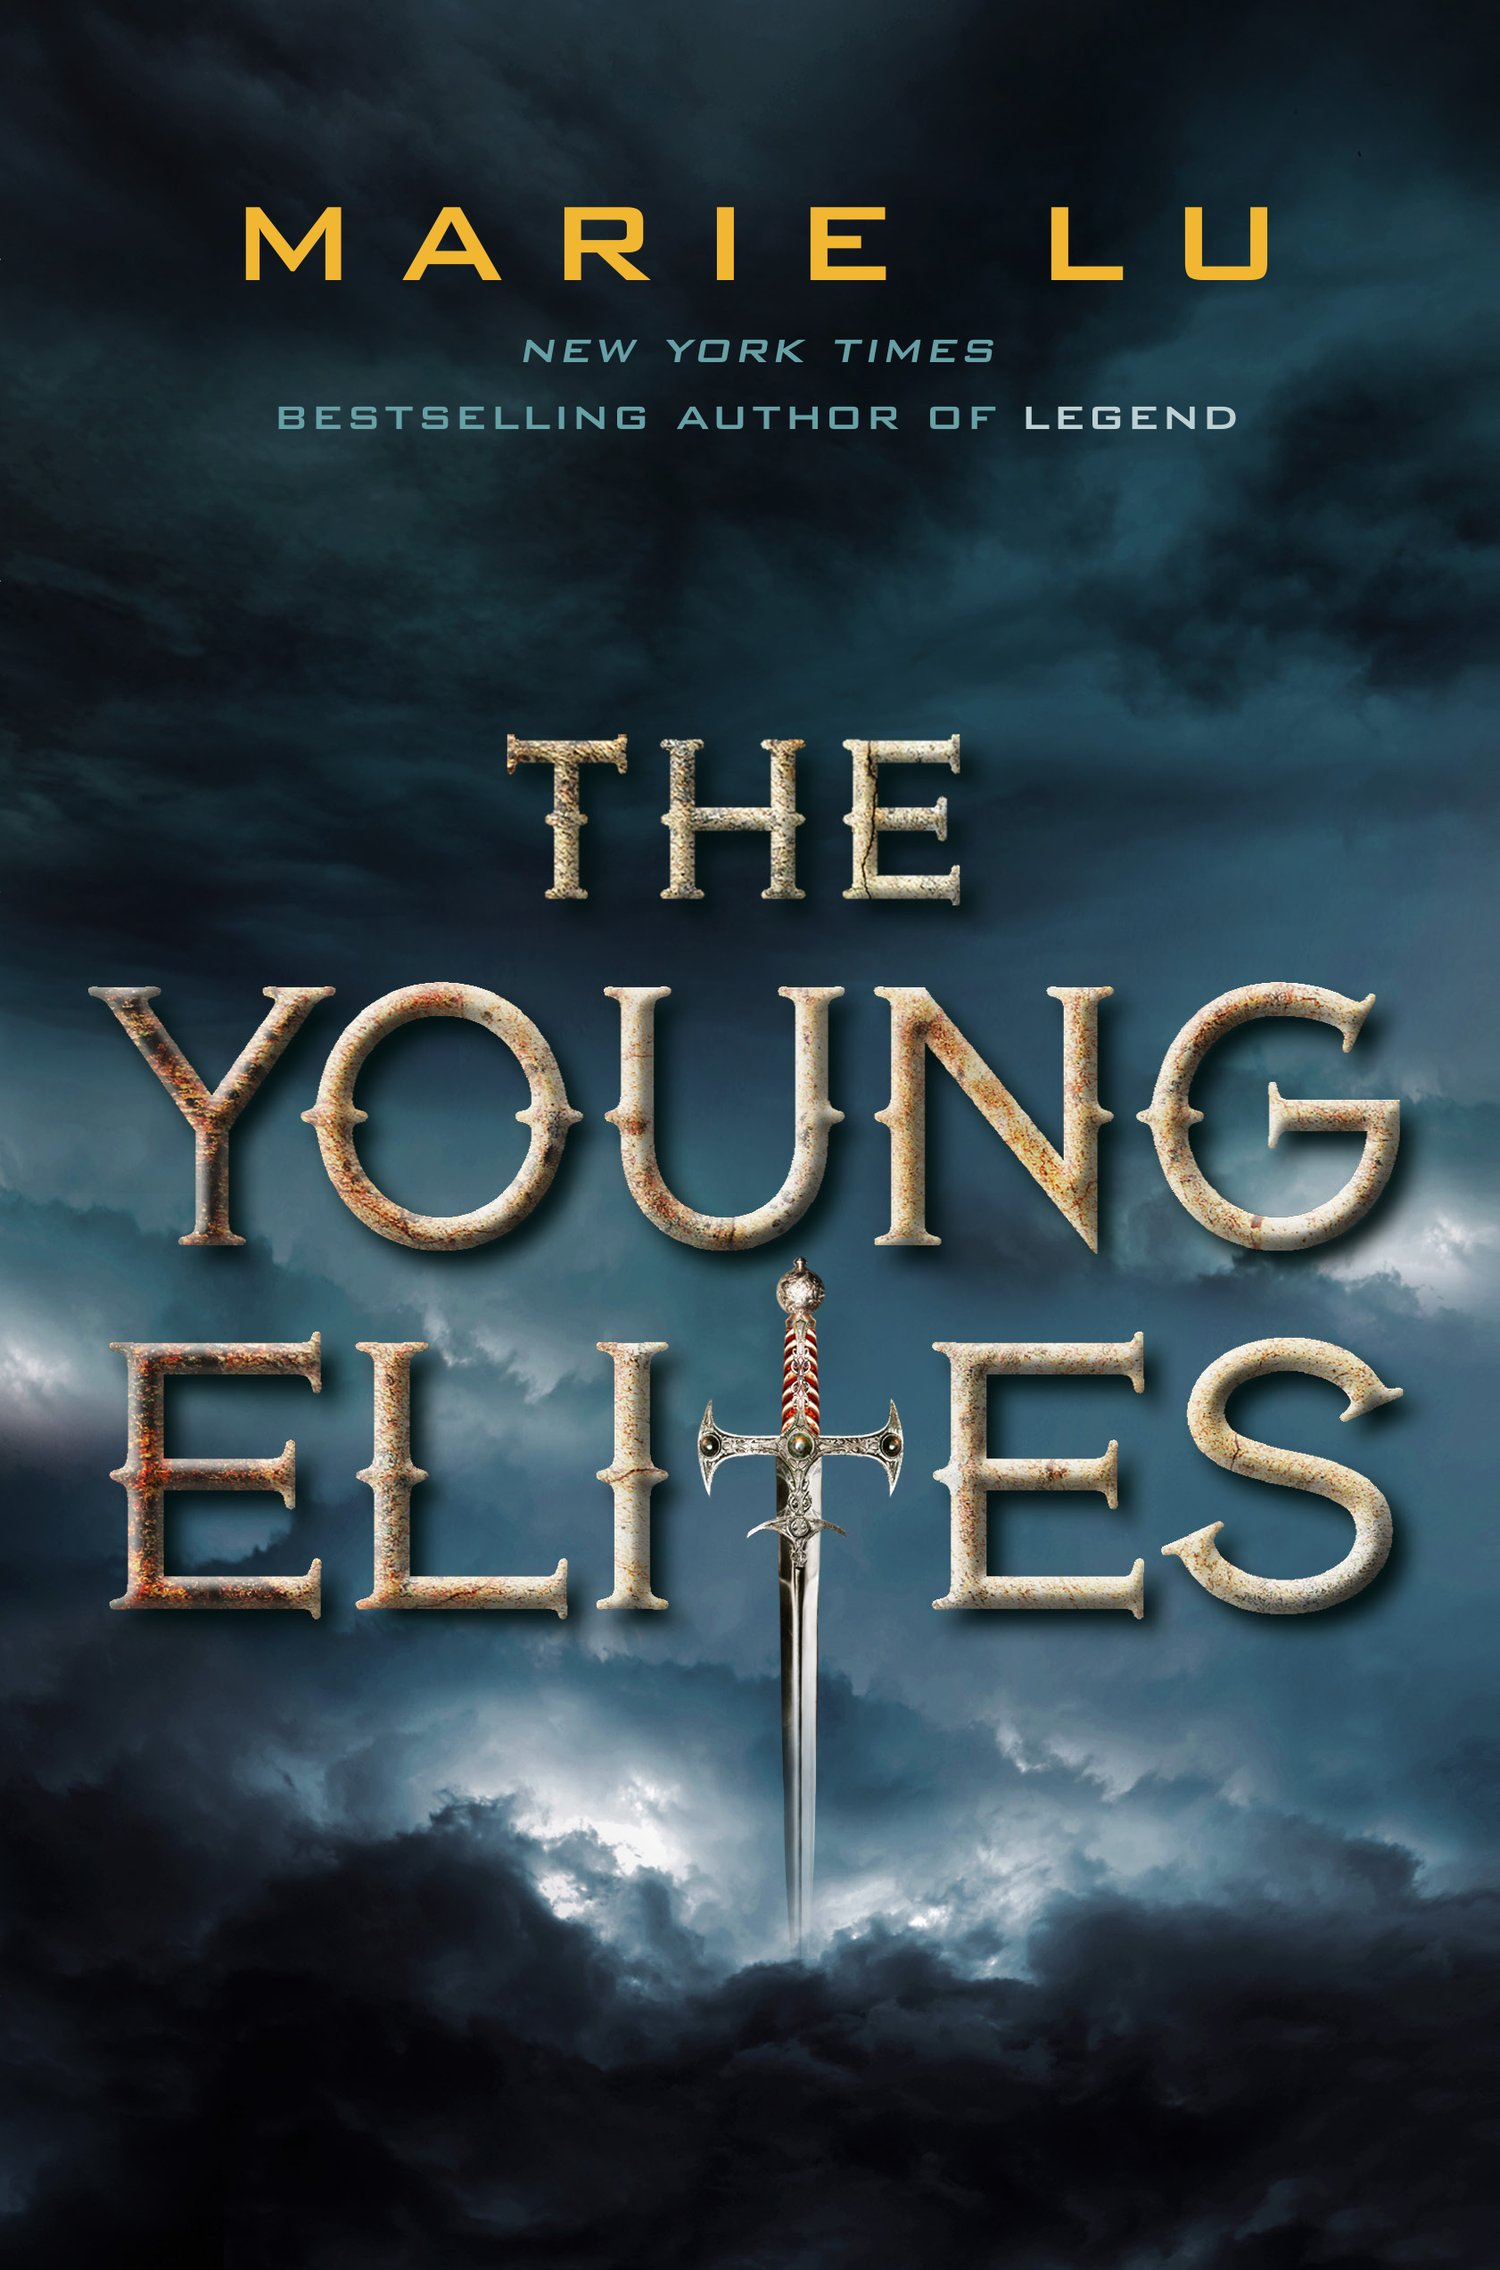 http://www.amazon.it/The-Young-Elites-Marie-Lu/dp/0399172726/ref=tmm_pap_title_0?ie=UTF8&qid=1418155075&sr=1-1